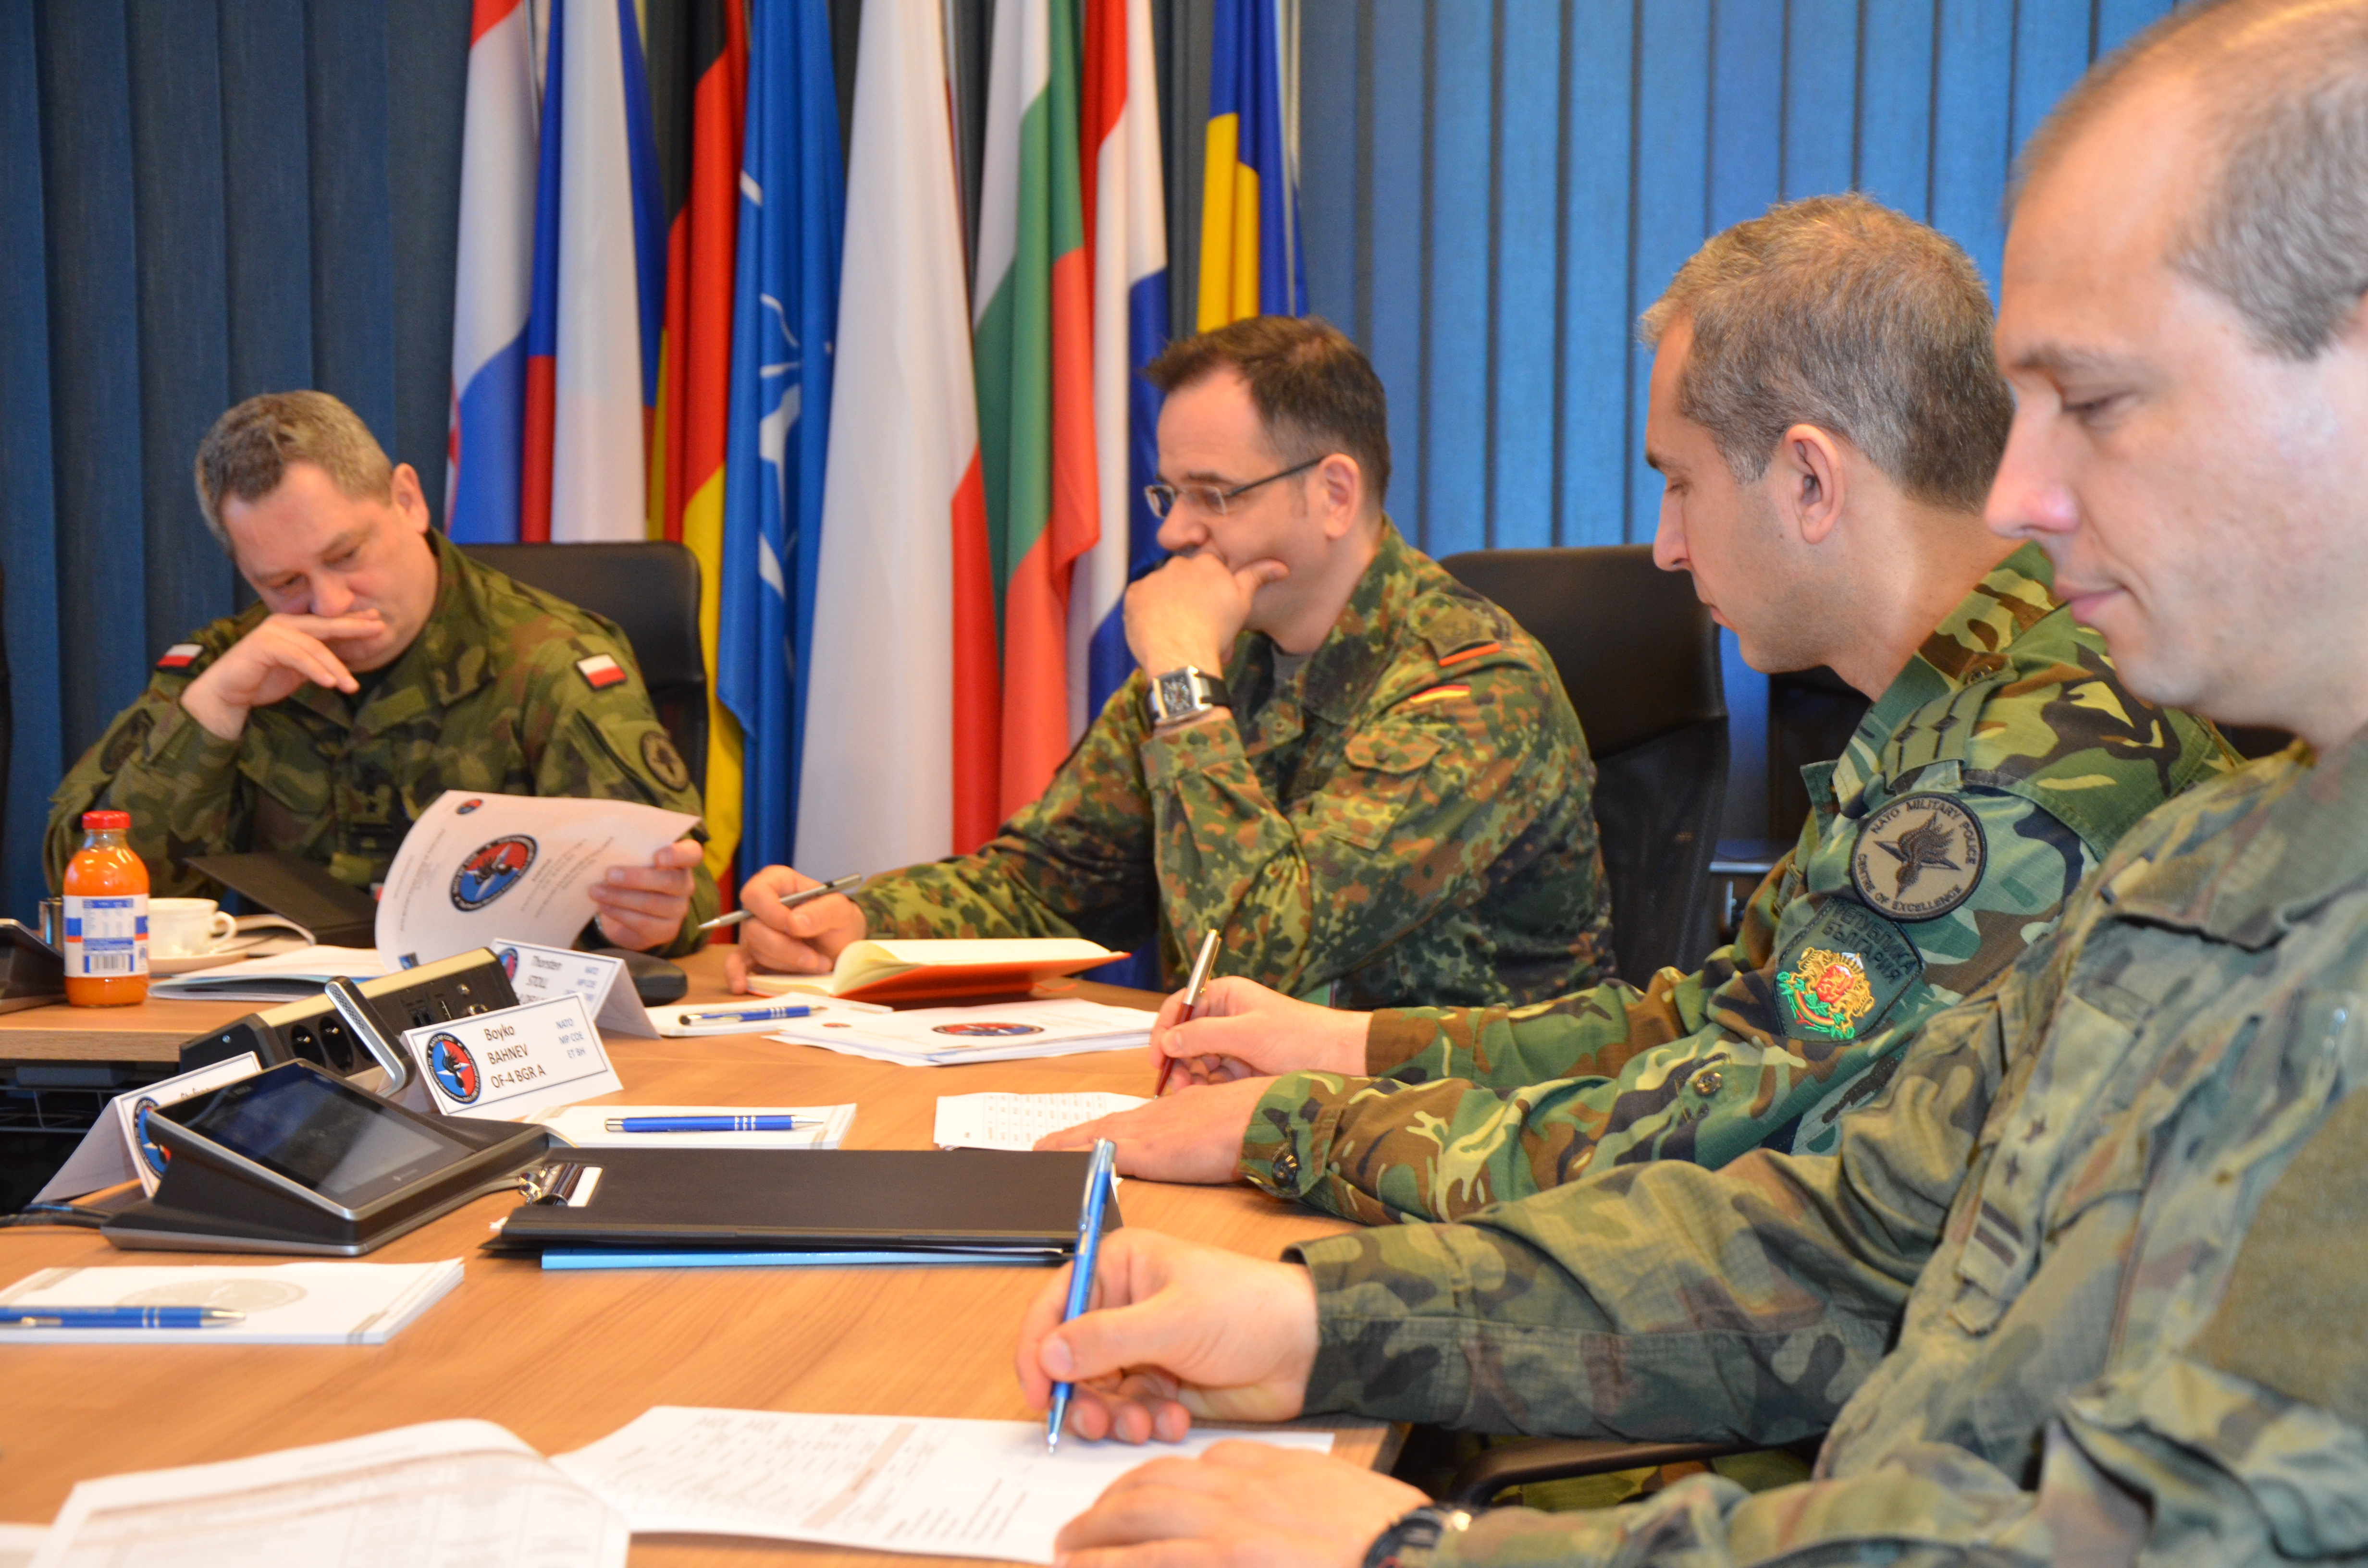 NATO MP COE held 1st annual Provost Marshal Forum - Events